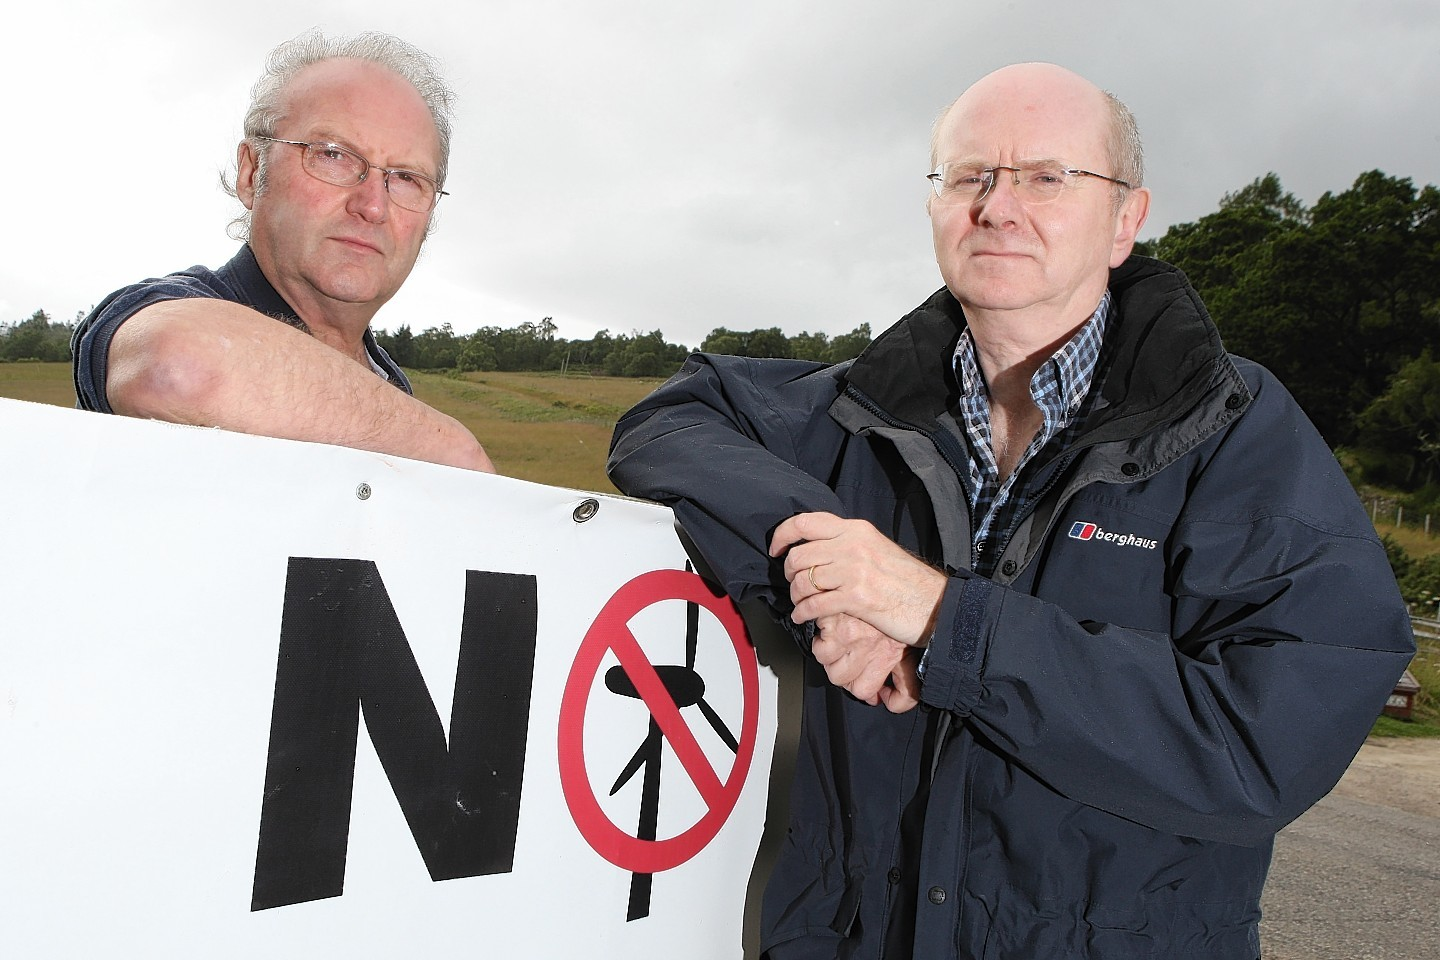 Dan Luscombe (left) and Cliff Green of campaign group Stag.